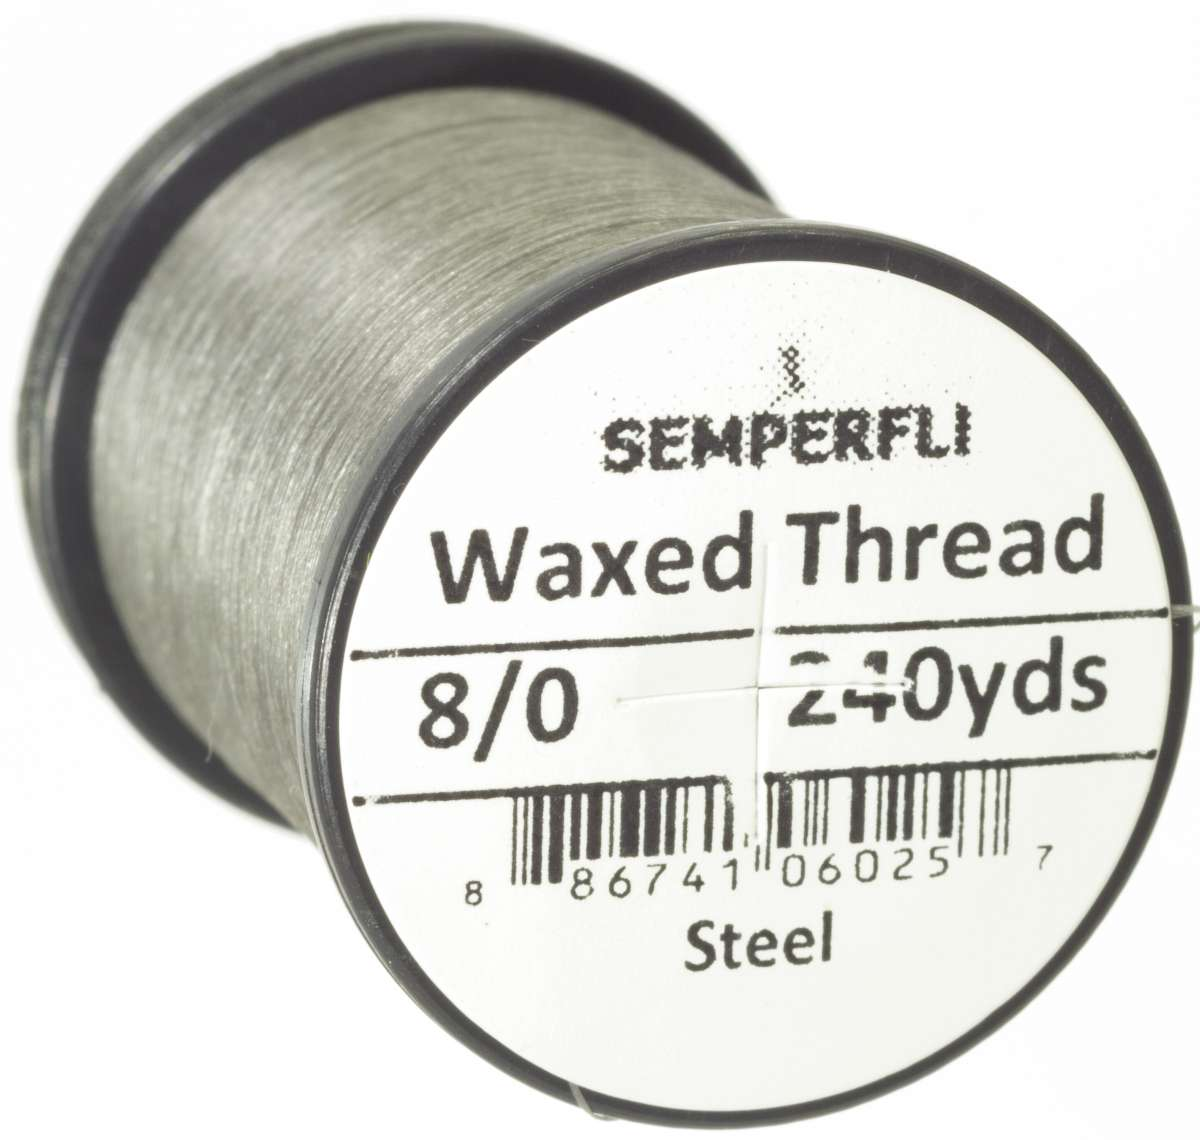 8/0 Classic Waxed Thread Steel Sem-0400-1504